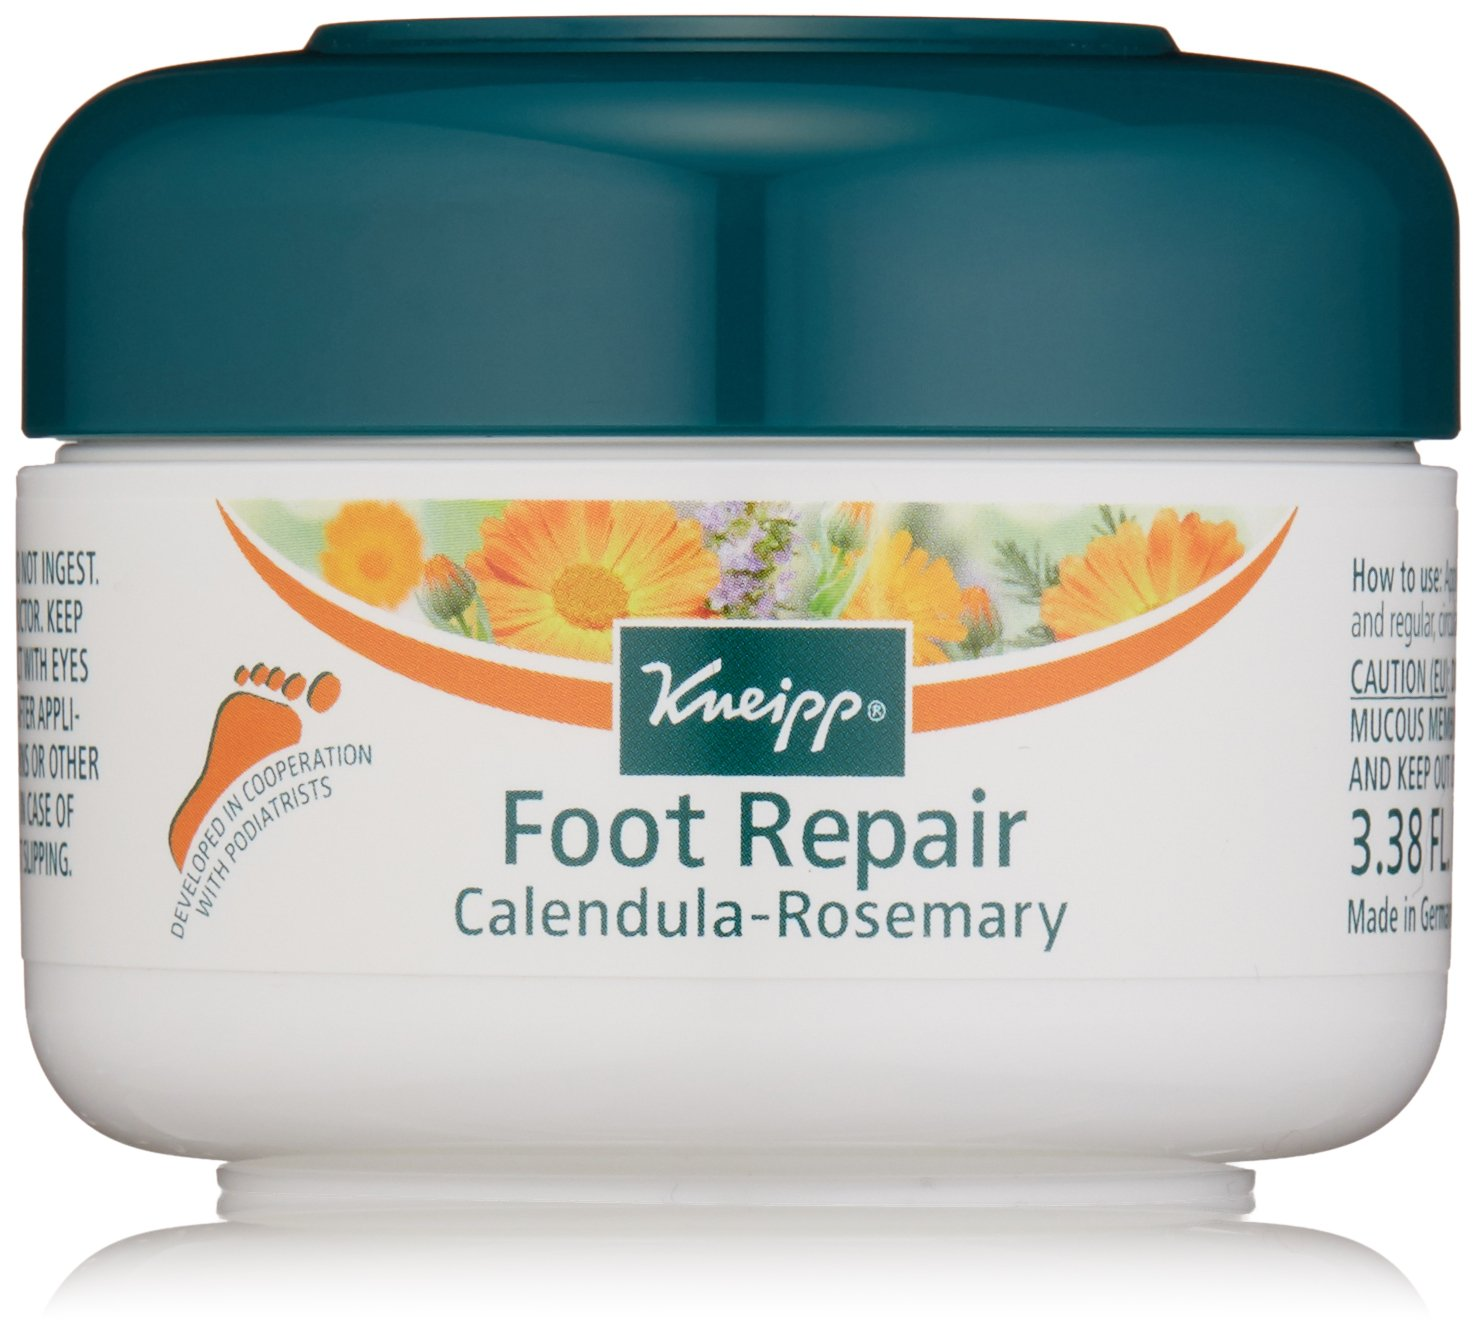 Kneipp Healthy Feet Foot Repair, Calendula Rosemary, 3.38 fl. oz.